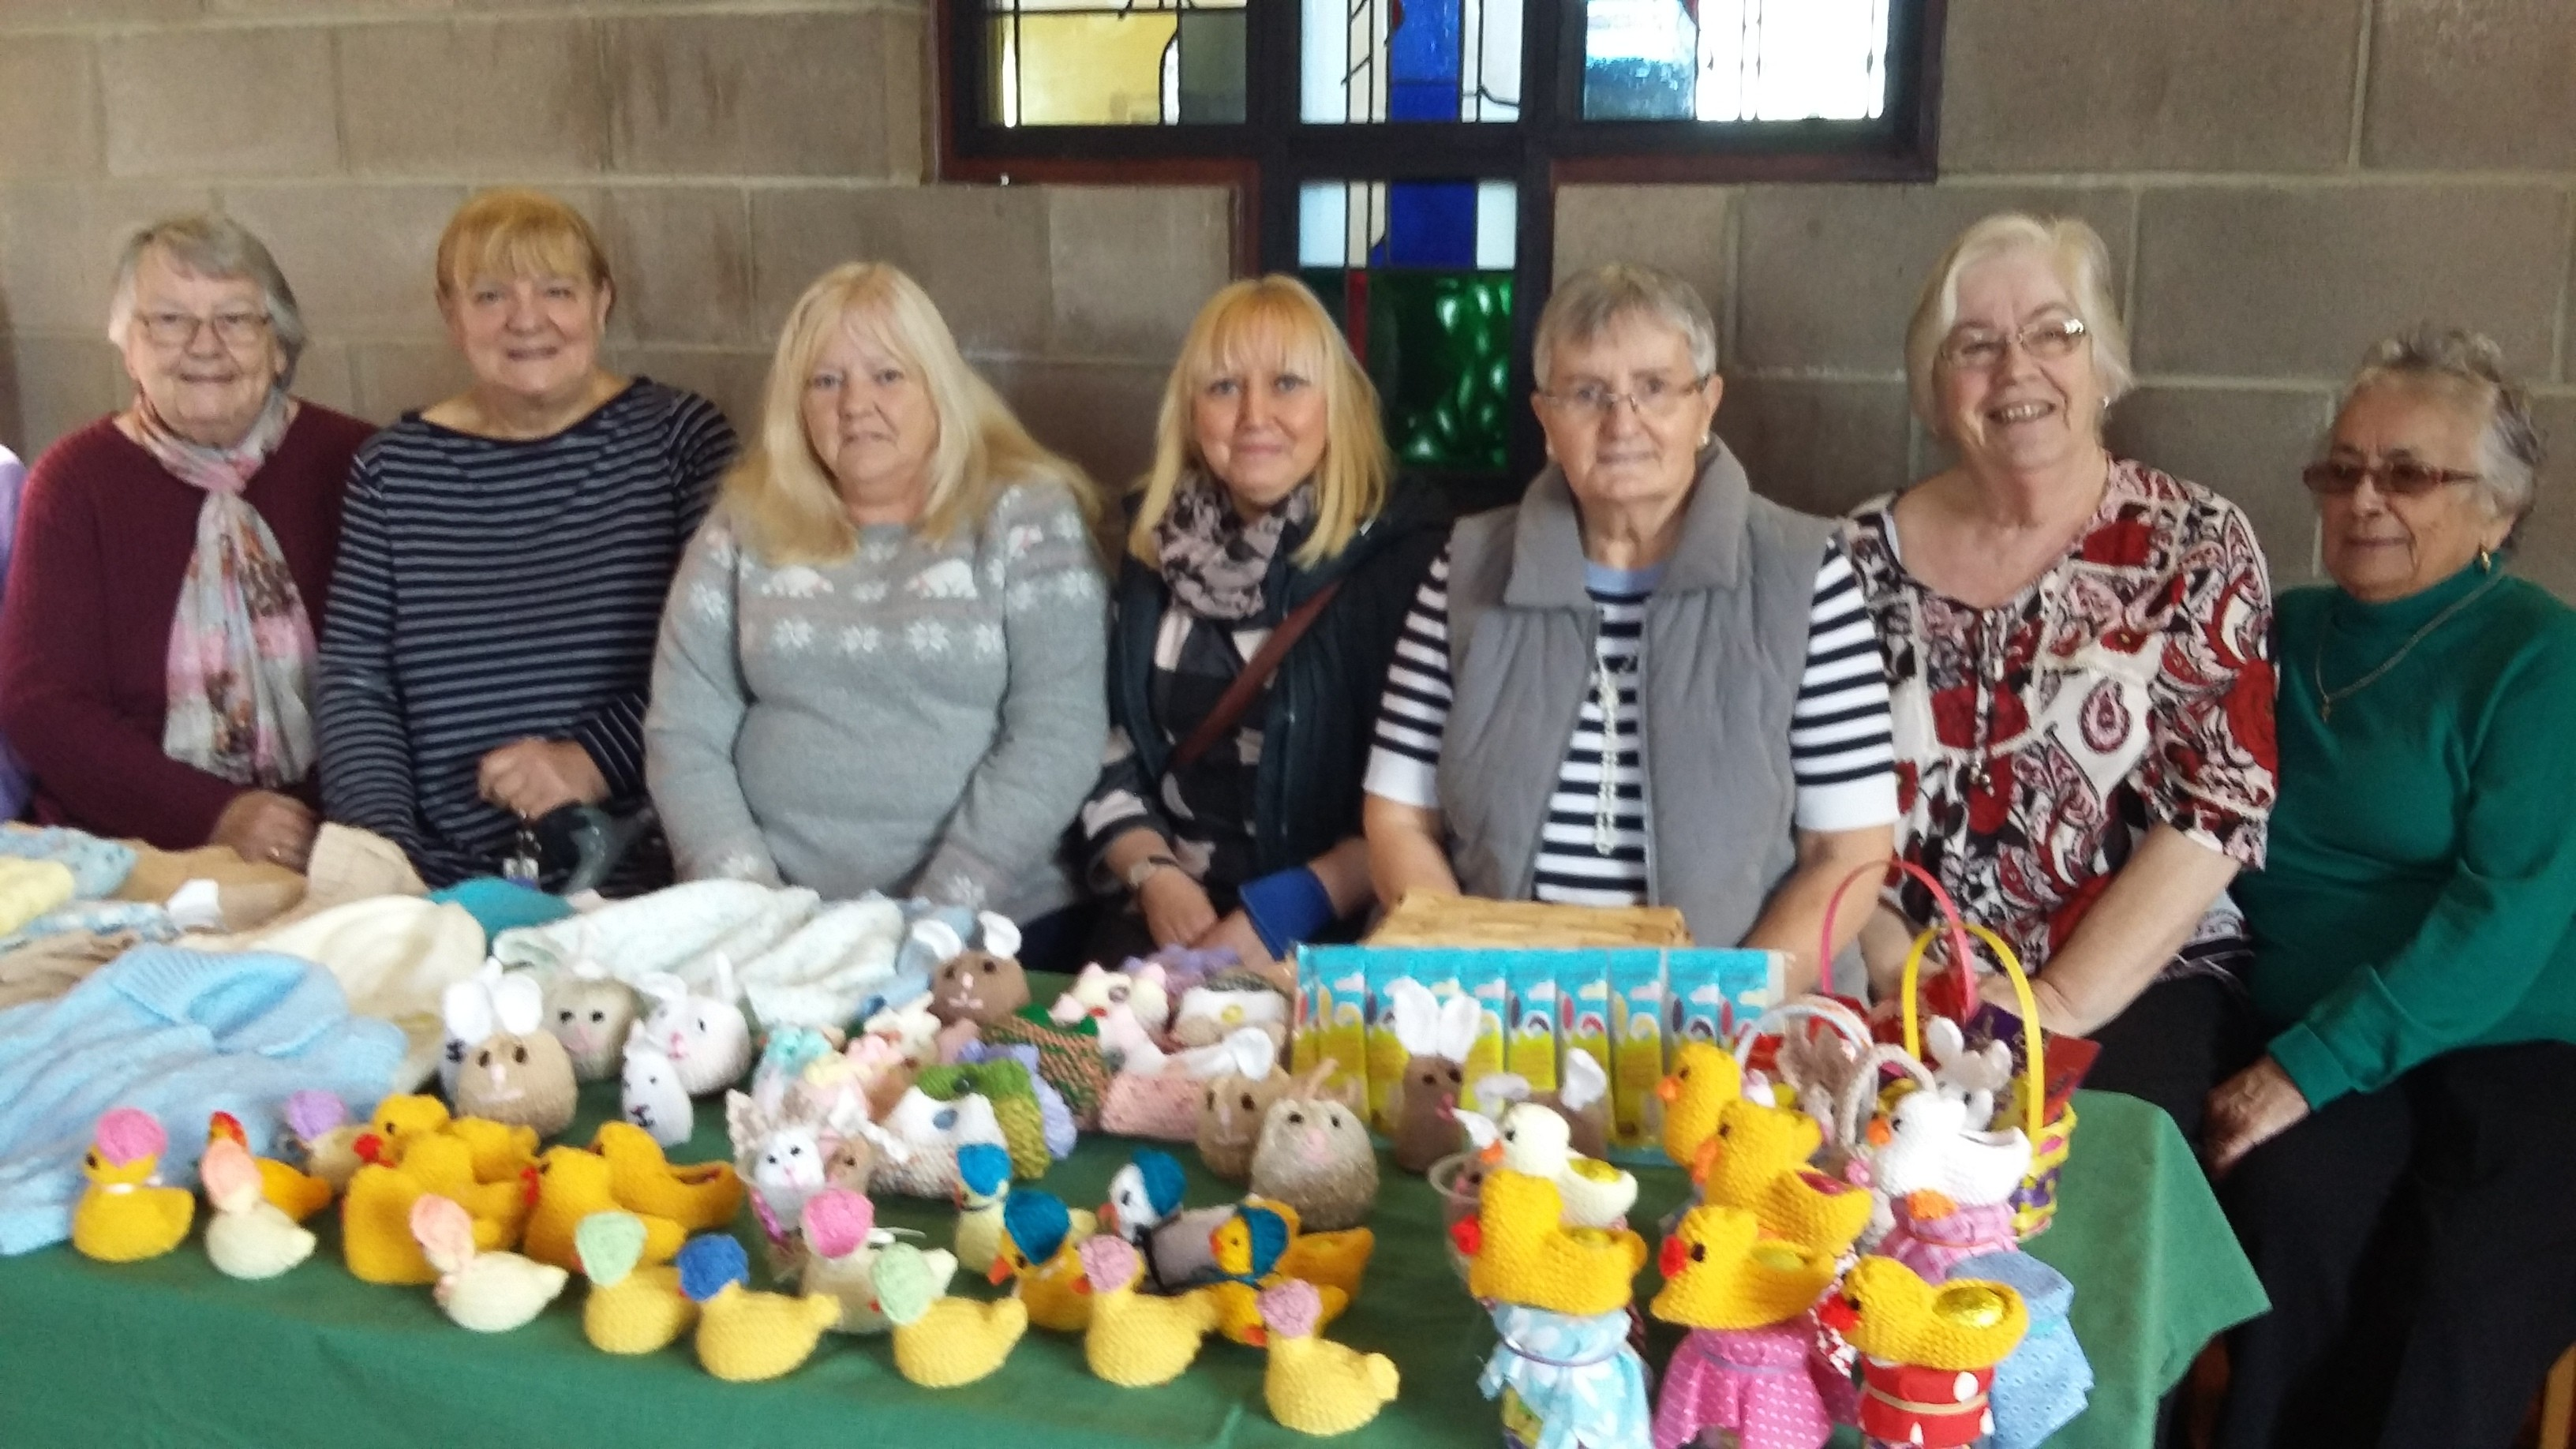 Children's Blessing Benefit from Knit & Natter Donation